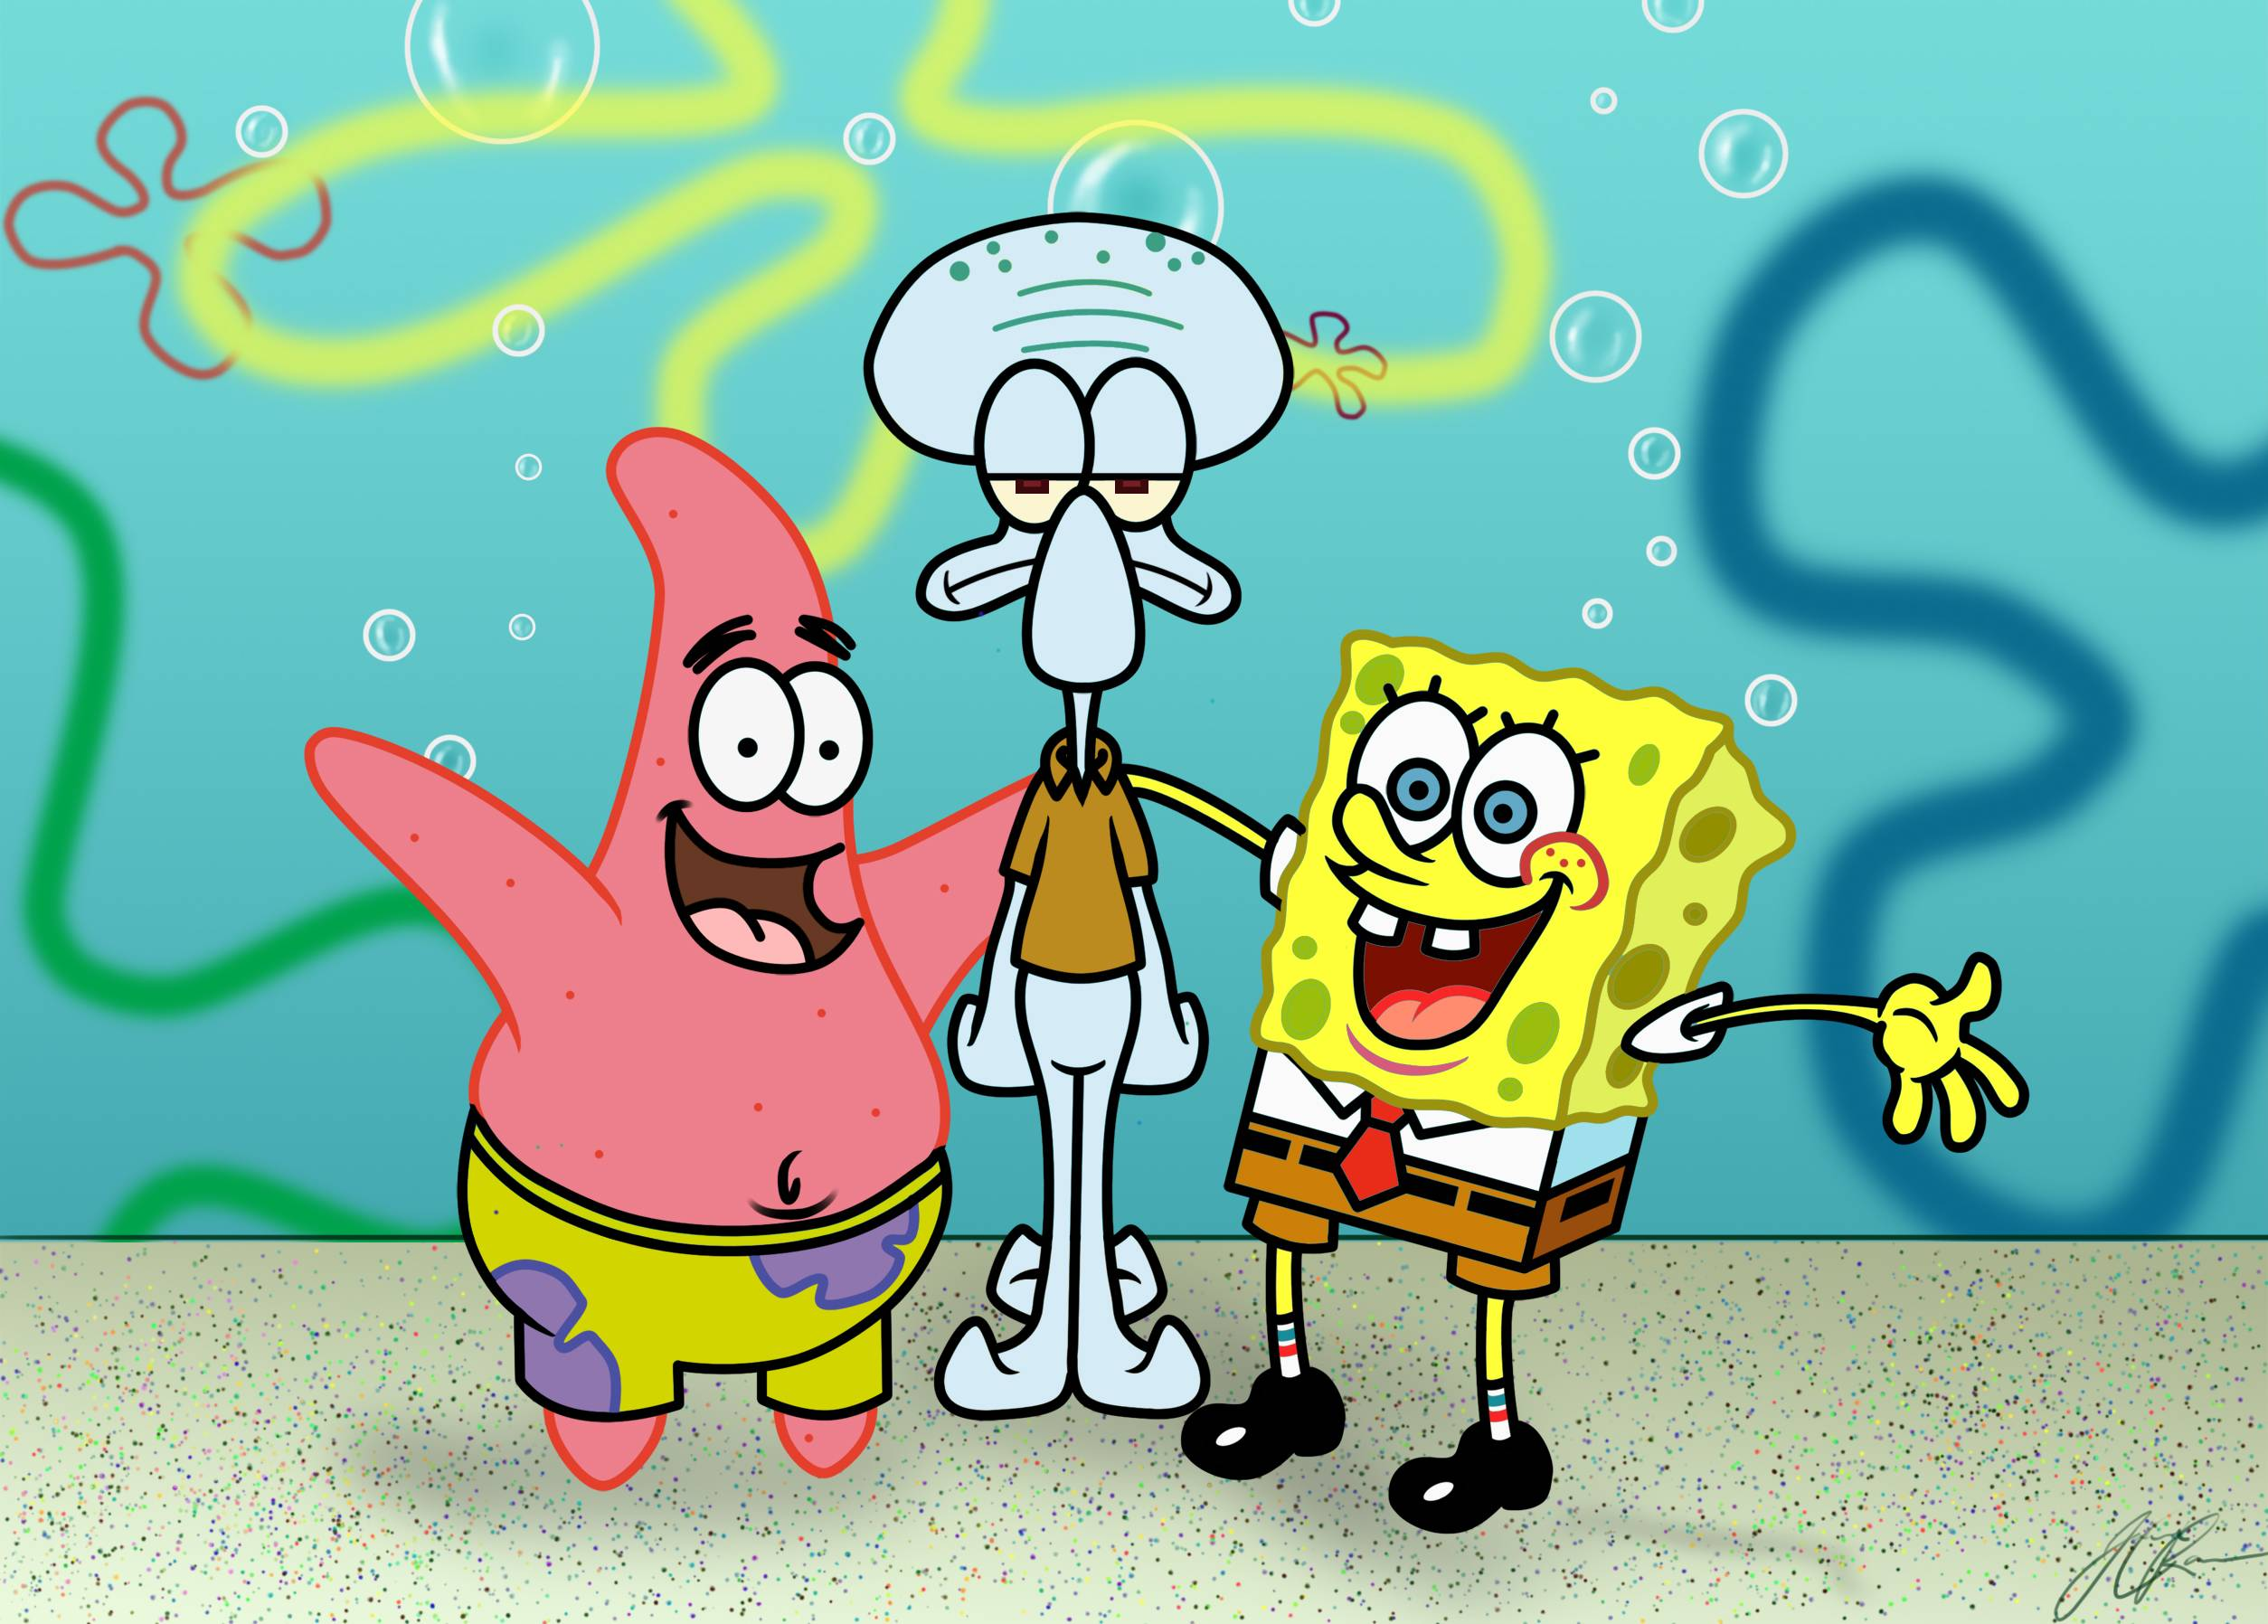 Spongebob Squarepants Wallpapers Wallpaper Cave